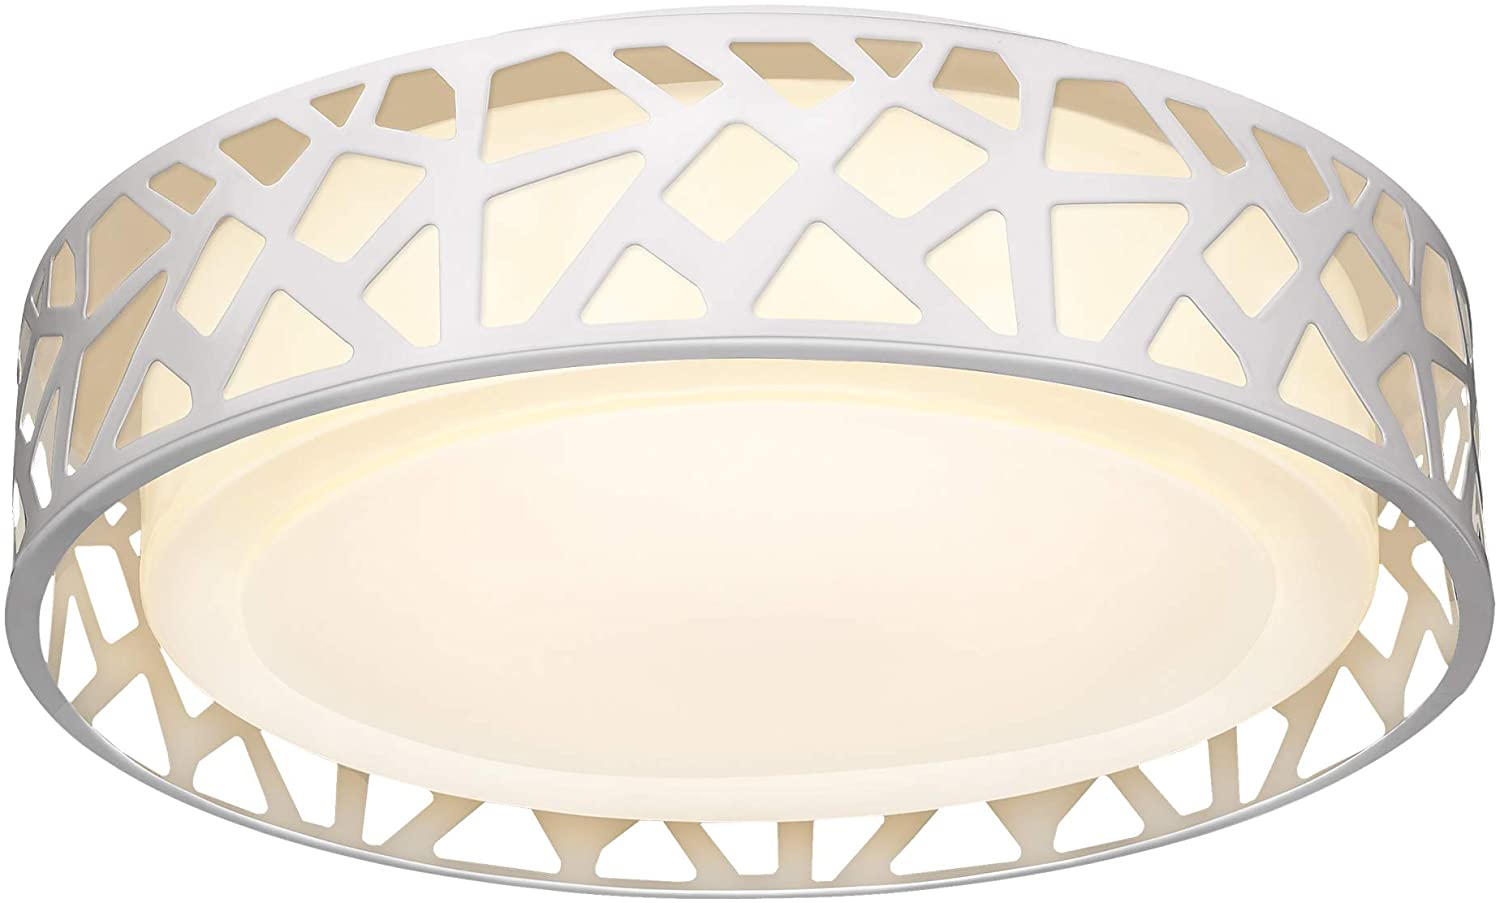 LED Flush Mount Ceiling Light, VICNIE 14 Inch Dimmable Round Lighting Fixture, 20W 1400 Lumens 3000K Warm White, ETL Listed for Kitchen, Hallway, Bedroom, Stairways (Metal Body and Acrylic Shade)